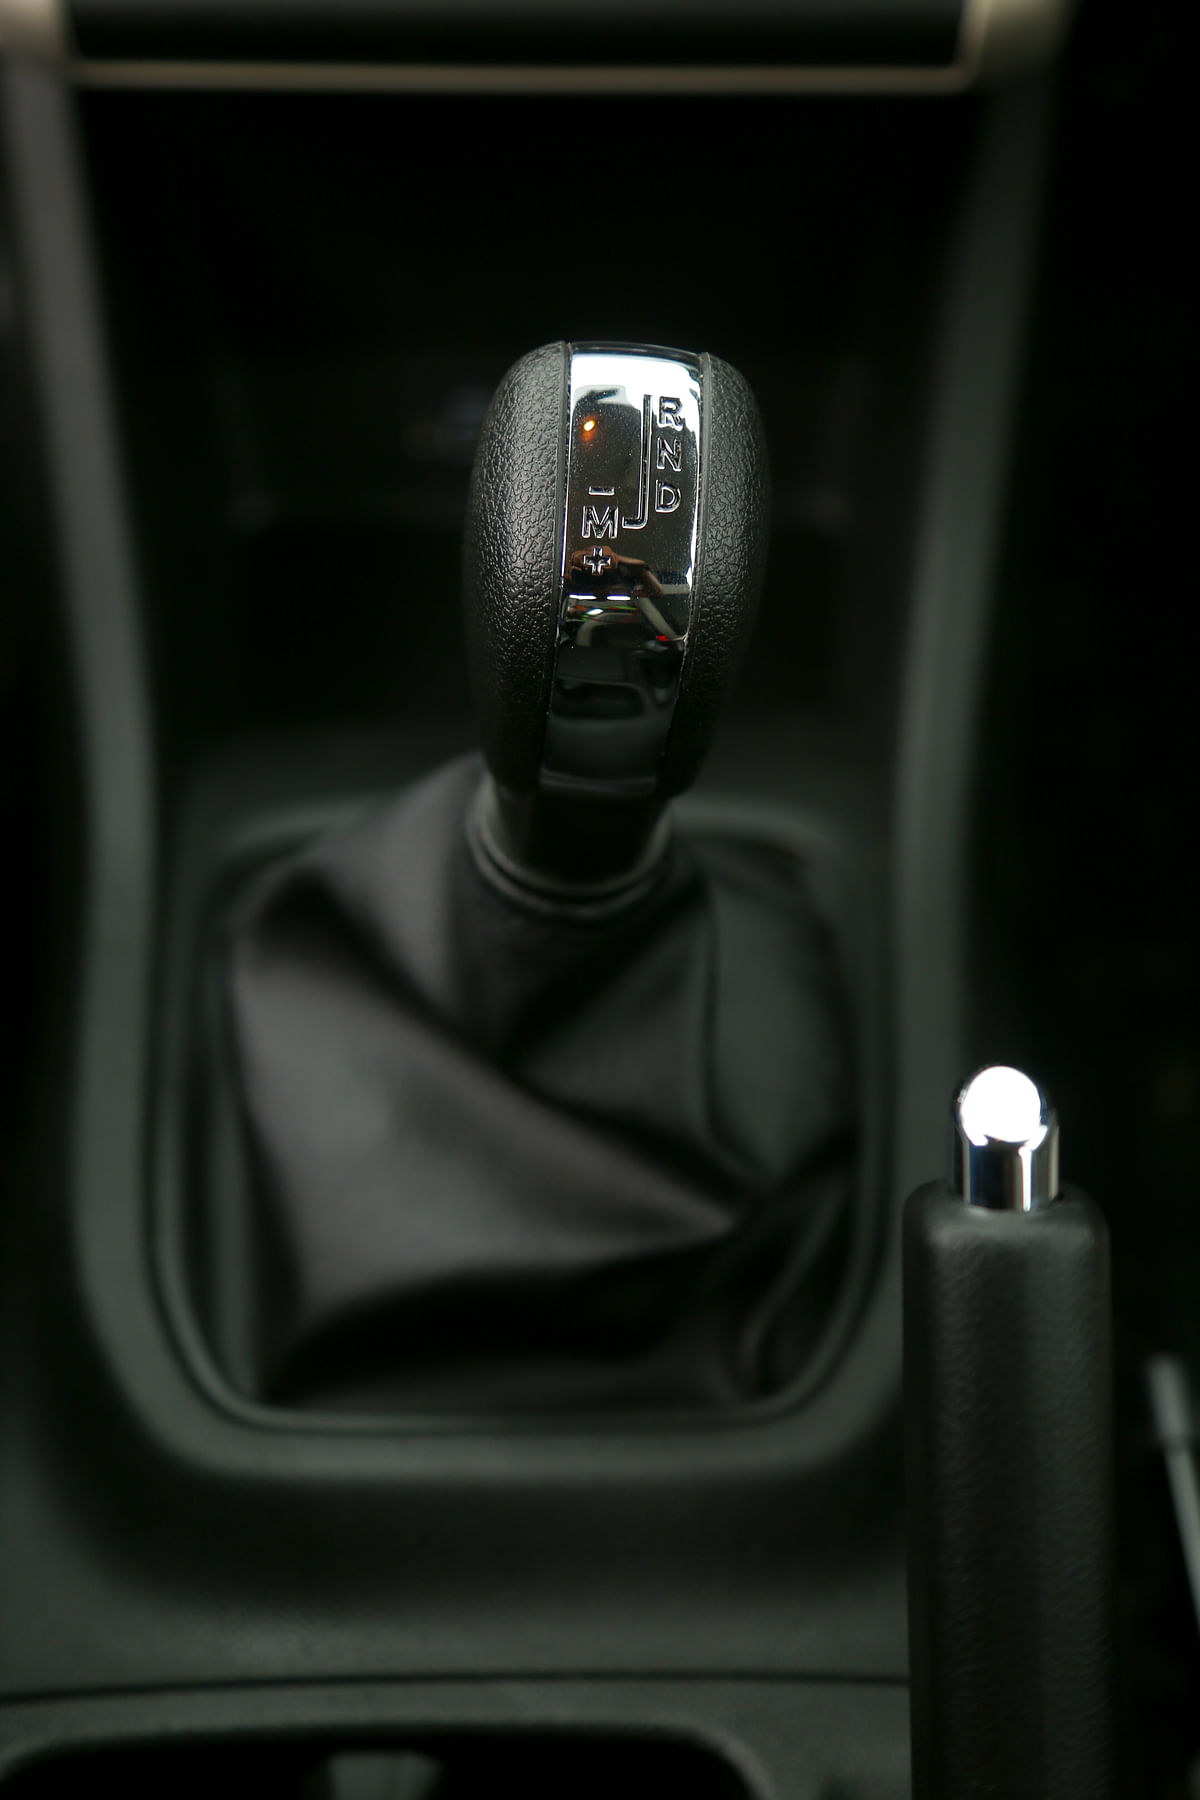 The AMT variant gets silver-ish accents on the gear lever, earlier seen on Duster AMT